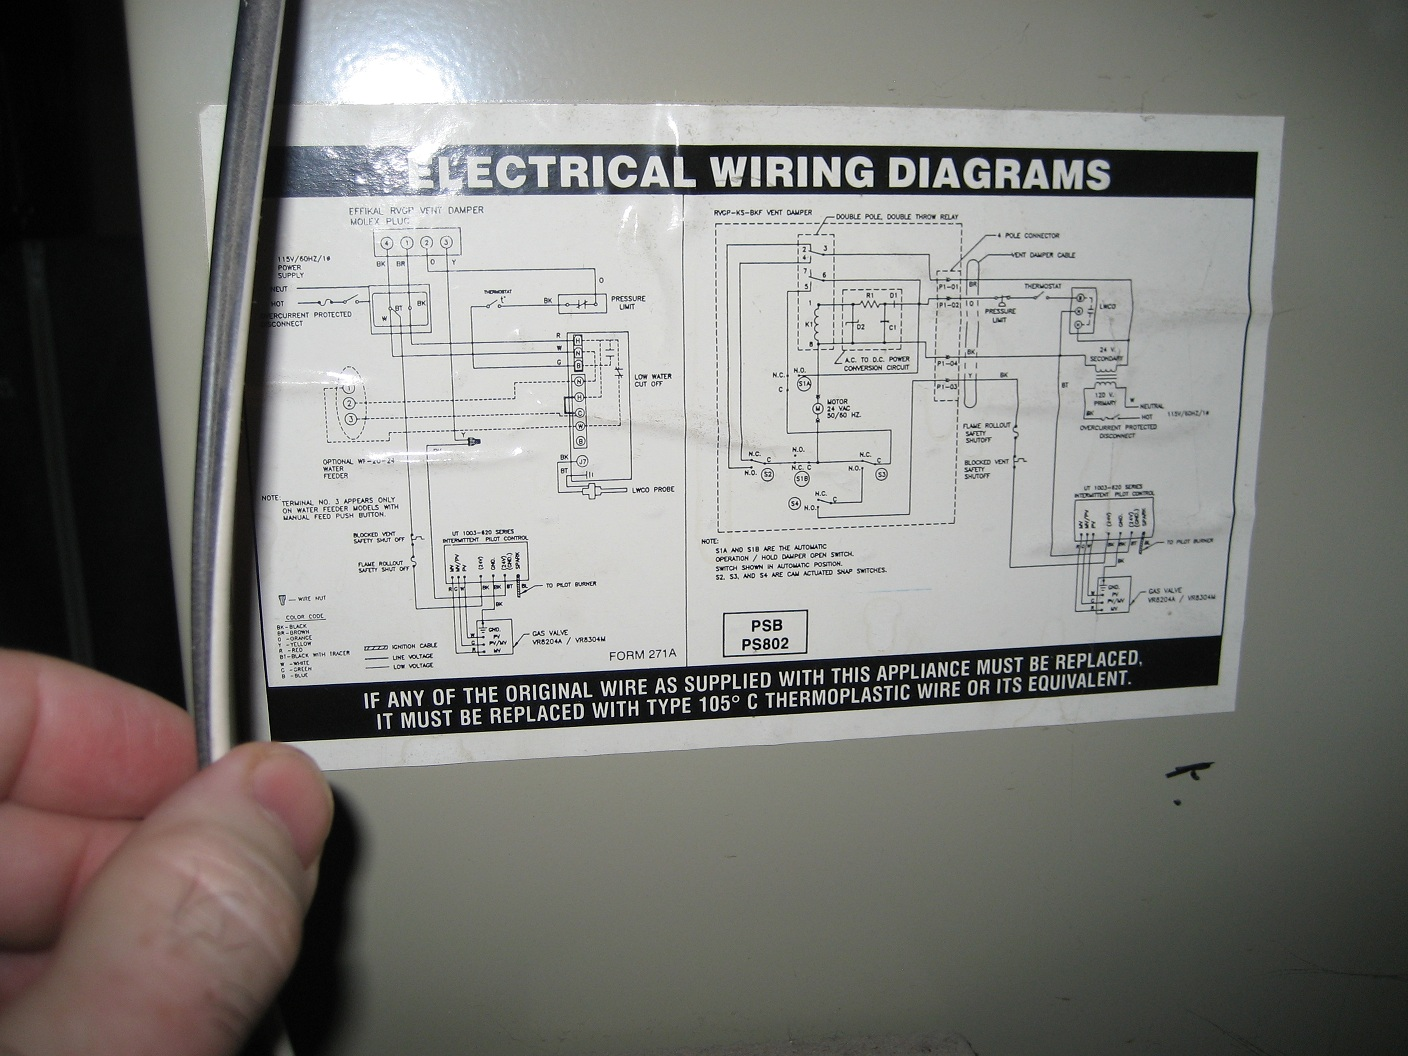 dunkirk boiler wiring diagram central heating boiler wiring diagram